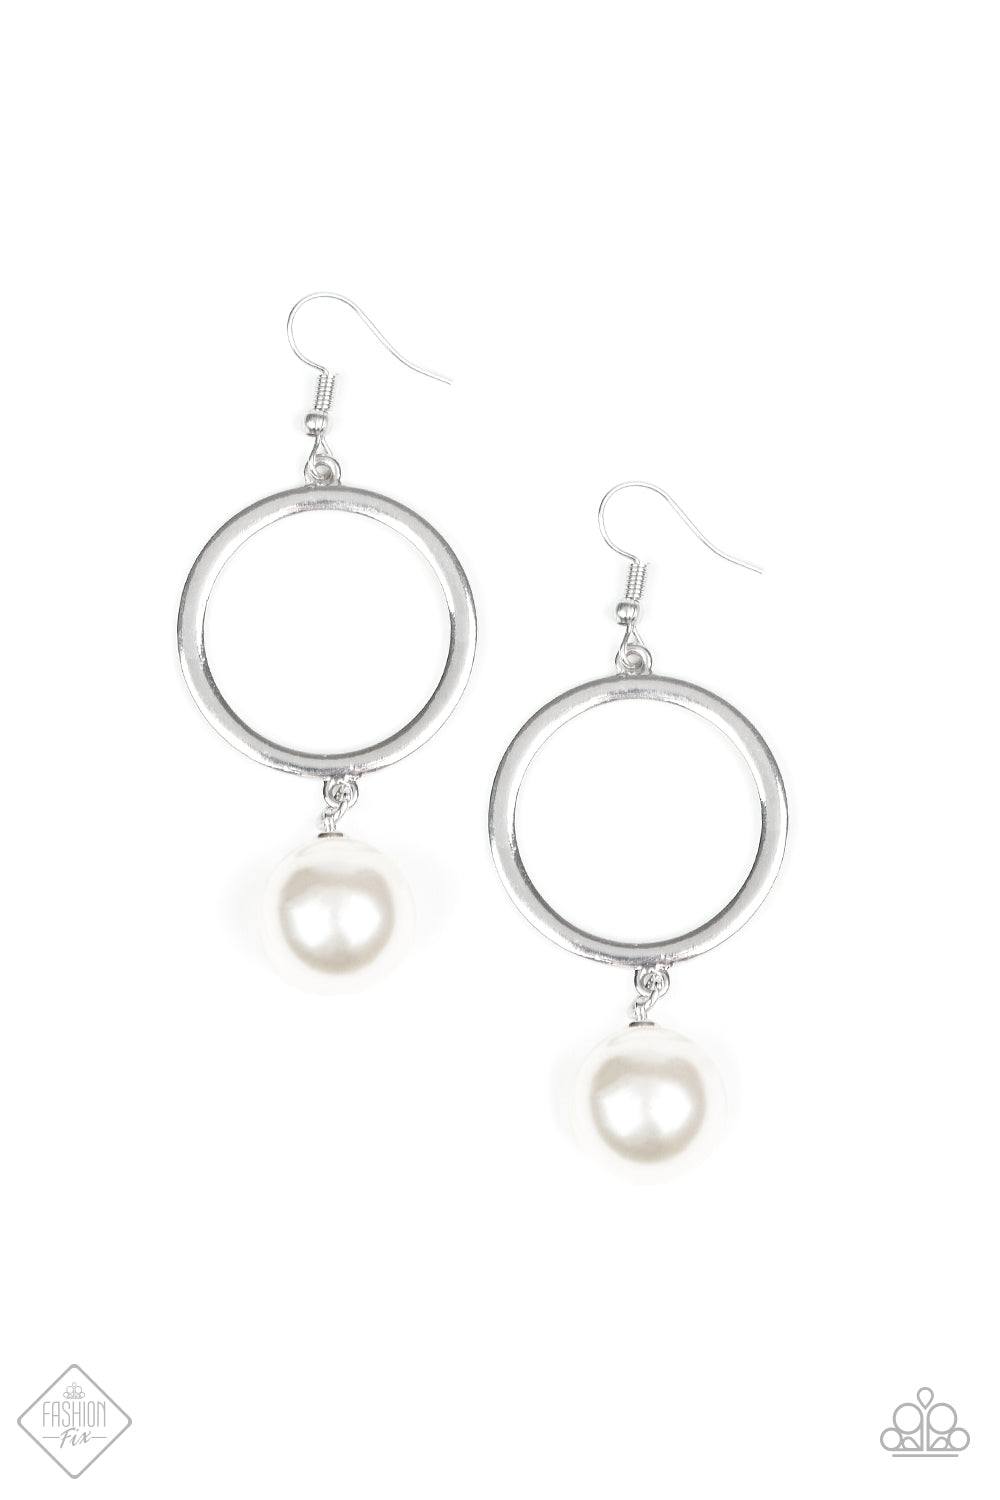 Grand Central Chic - White Pearl Hoop Earrings - The Paparazzi Fox